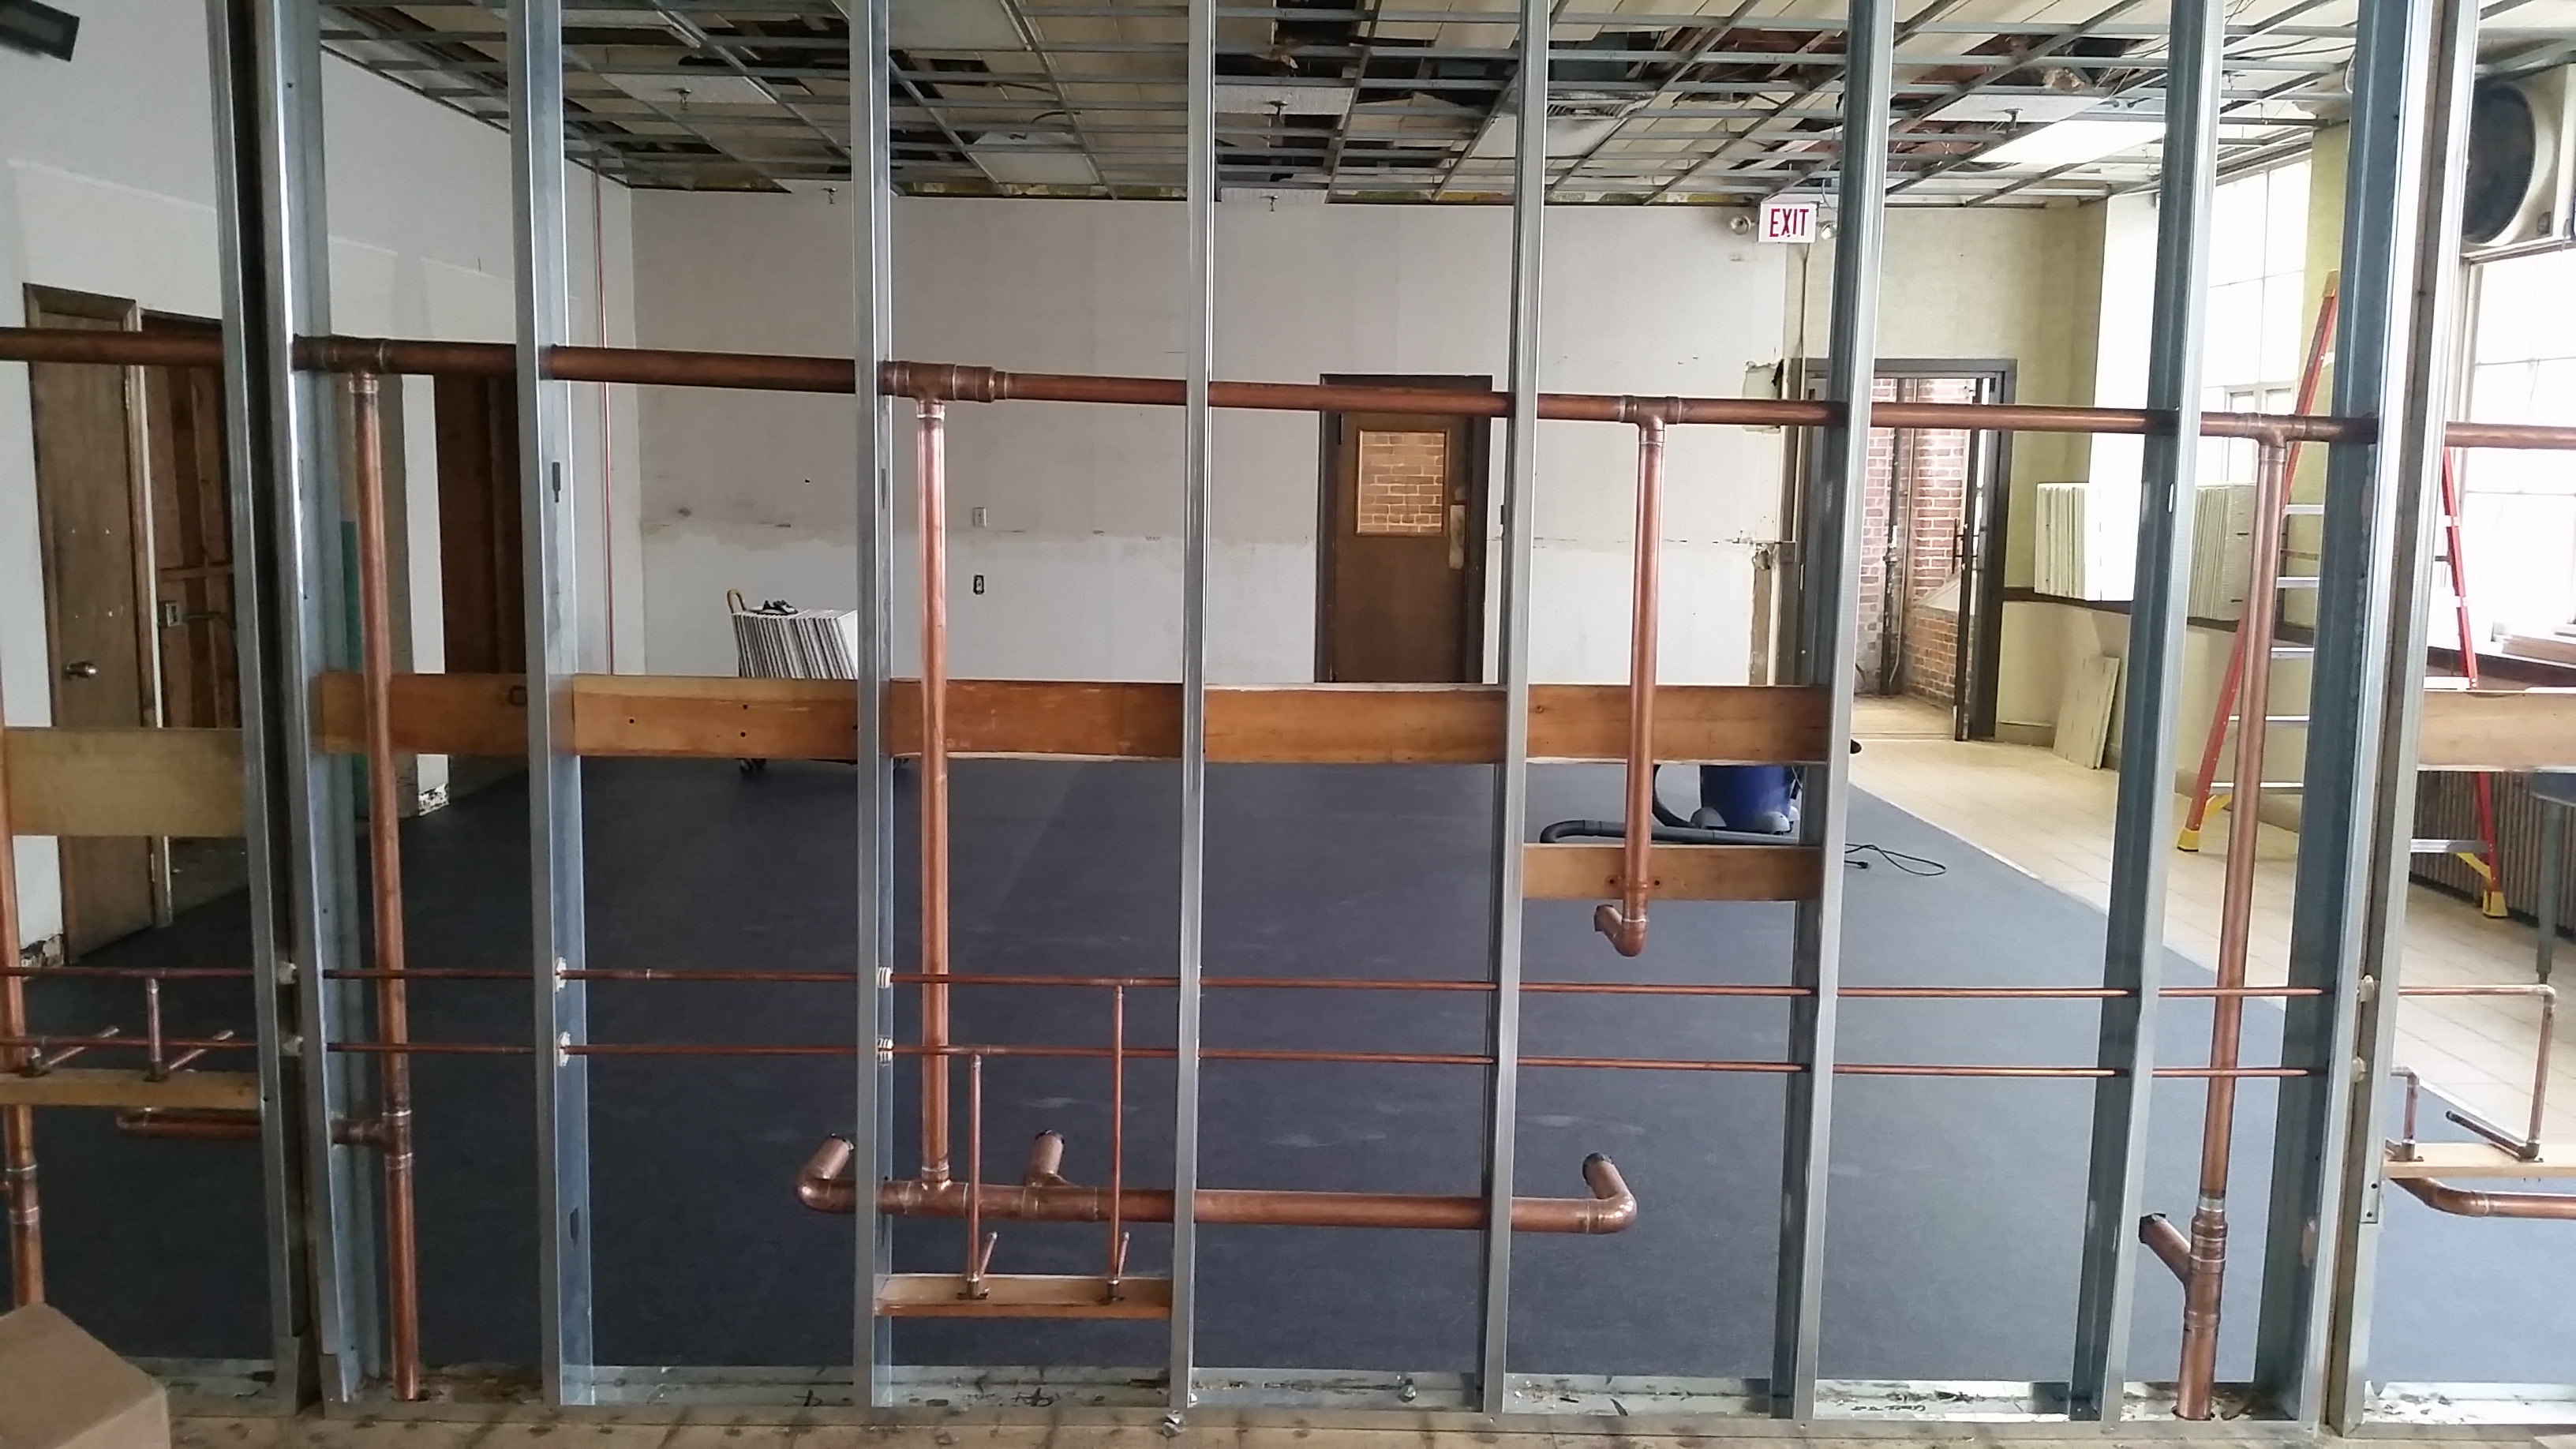 New Floor Is In And Plumbing Has Started Too! Both Are Works Of Art!